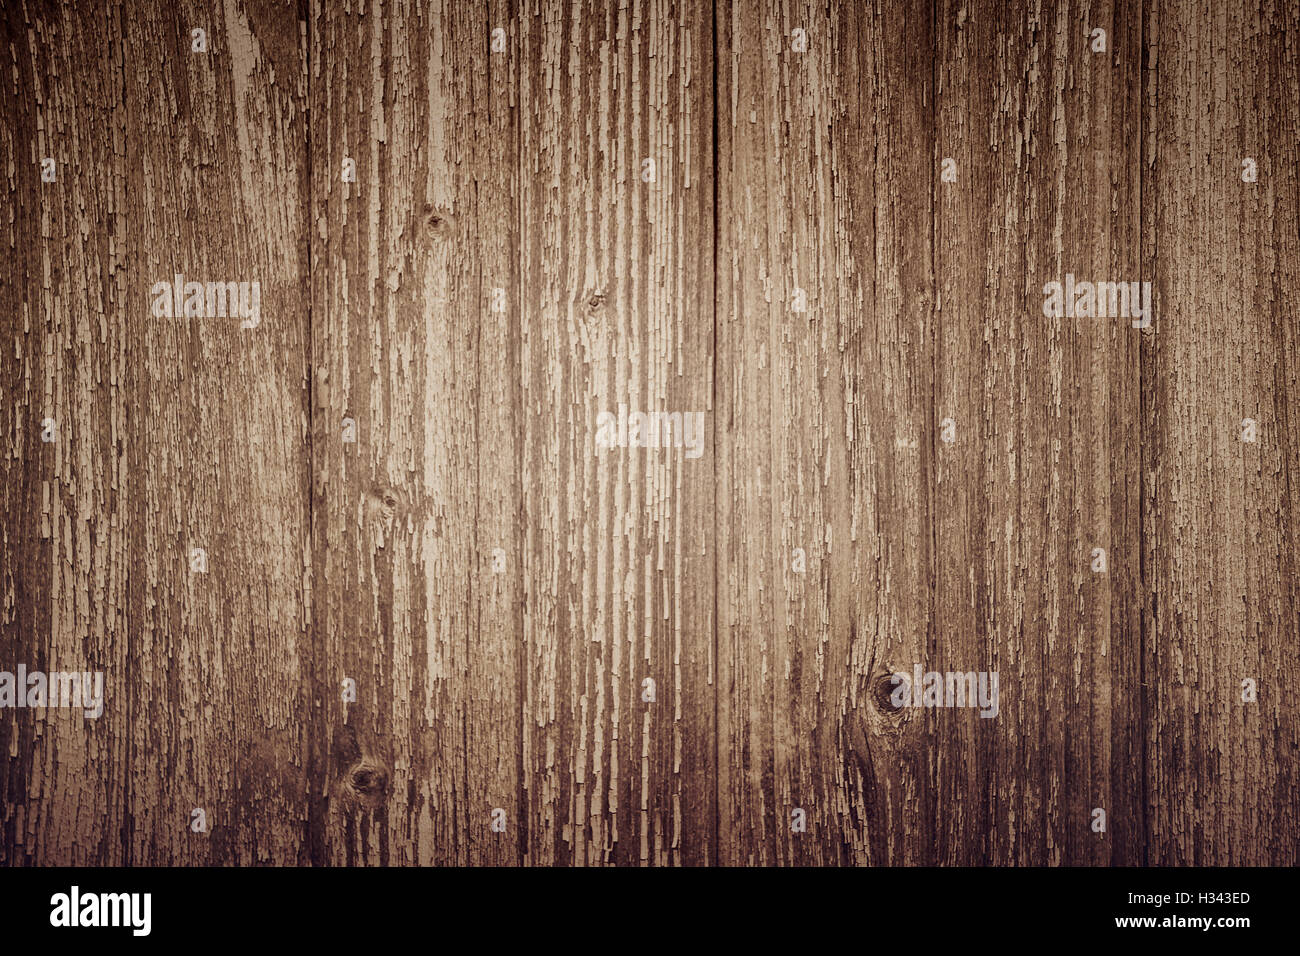 Wood texture wooden plank - Stock Photo Wooden Plank Background Brown Vertical Boards Wood Texture Old Table Floor Wall Vintage